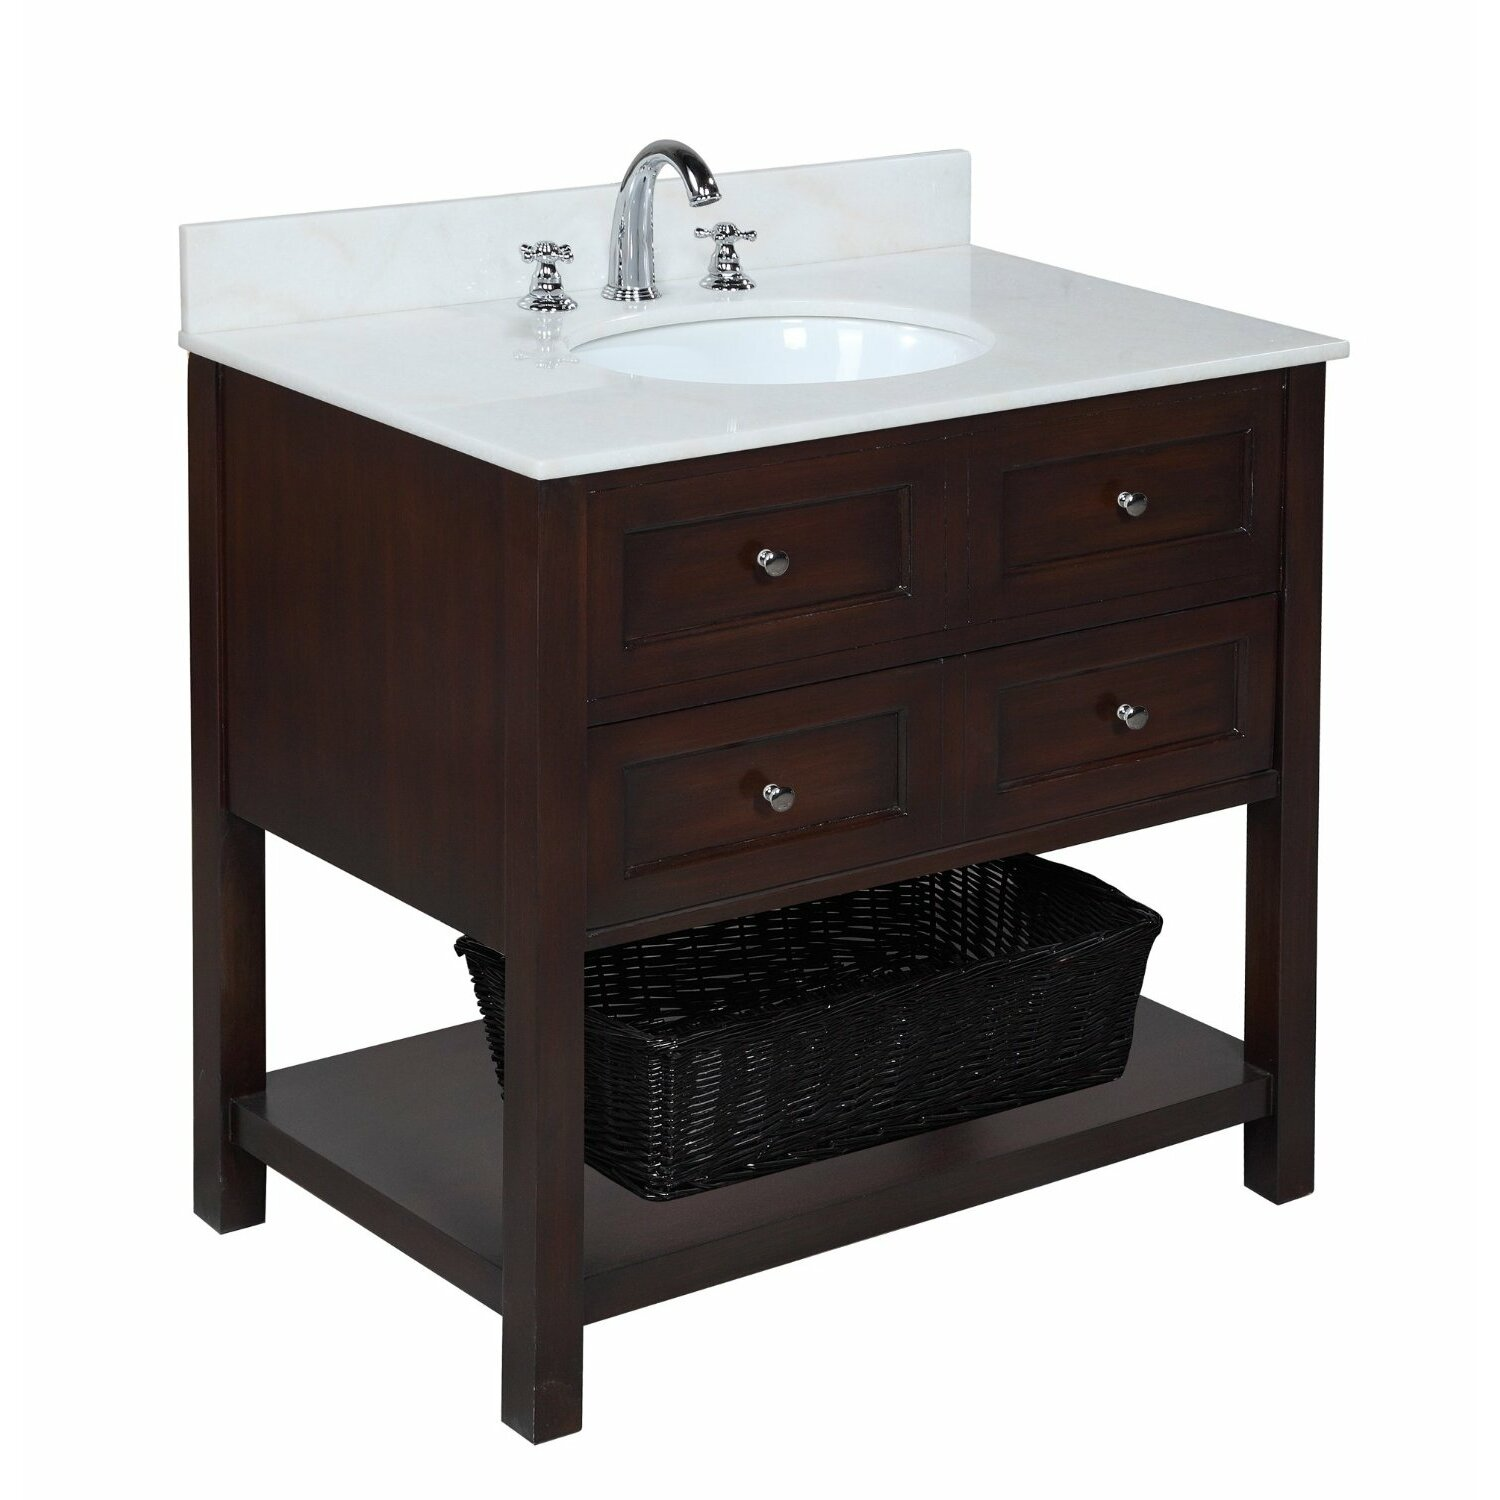 Kbc new yorker 36 single bathroom vanity set reviews for Bath and vanity set